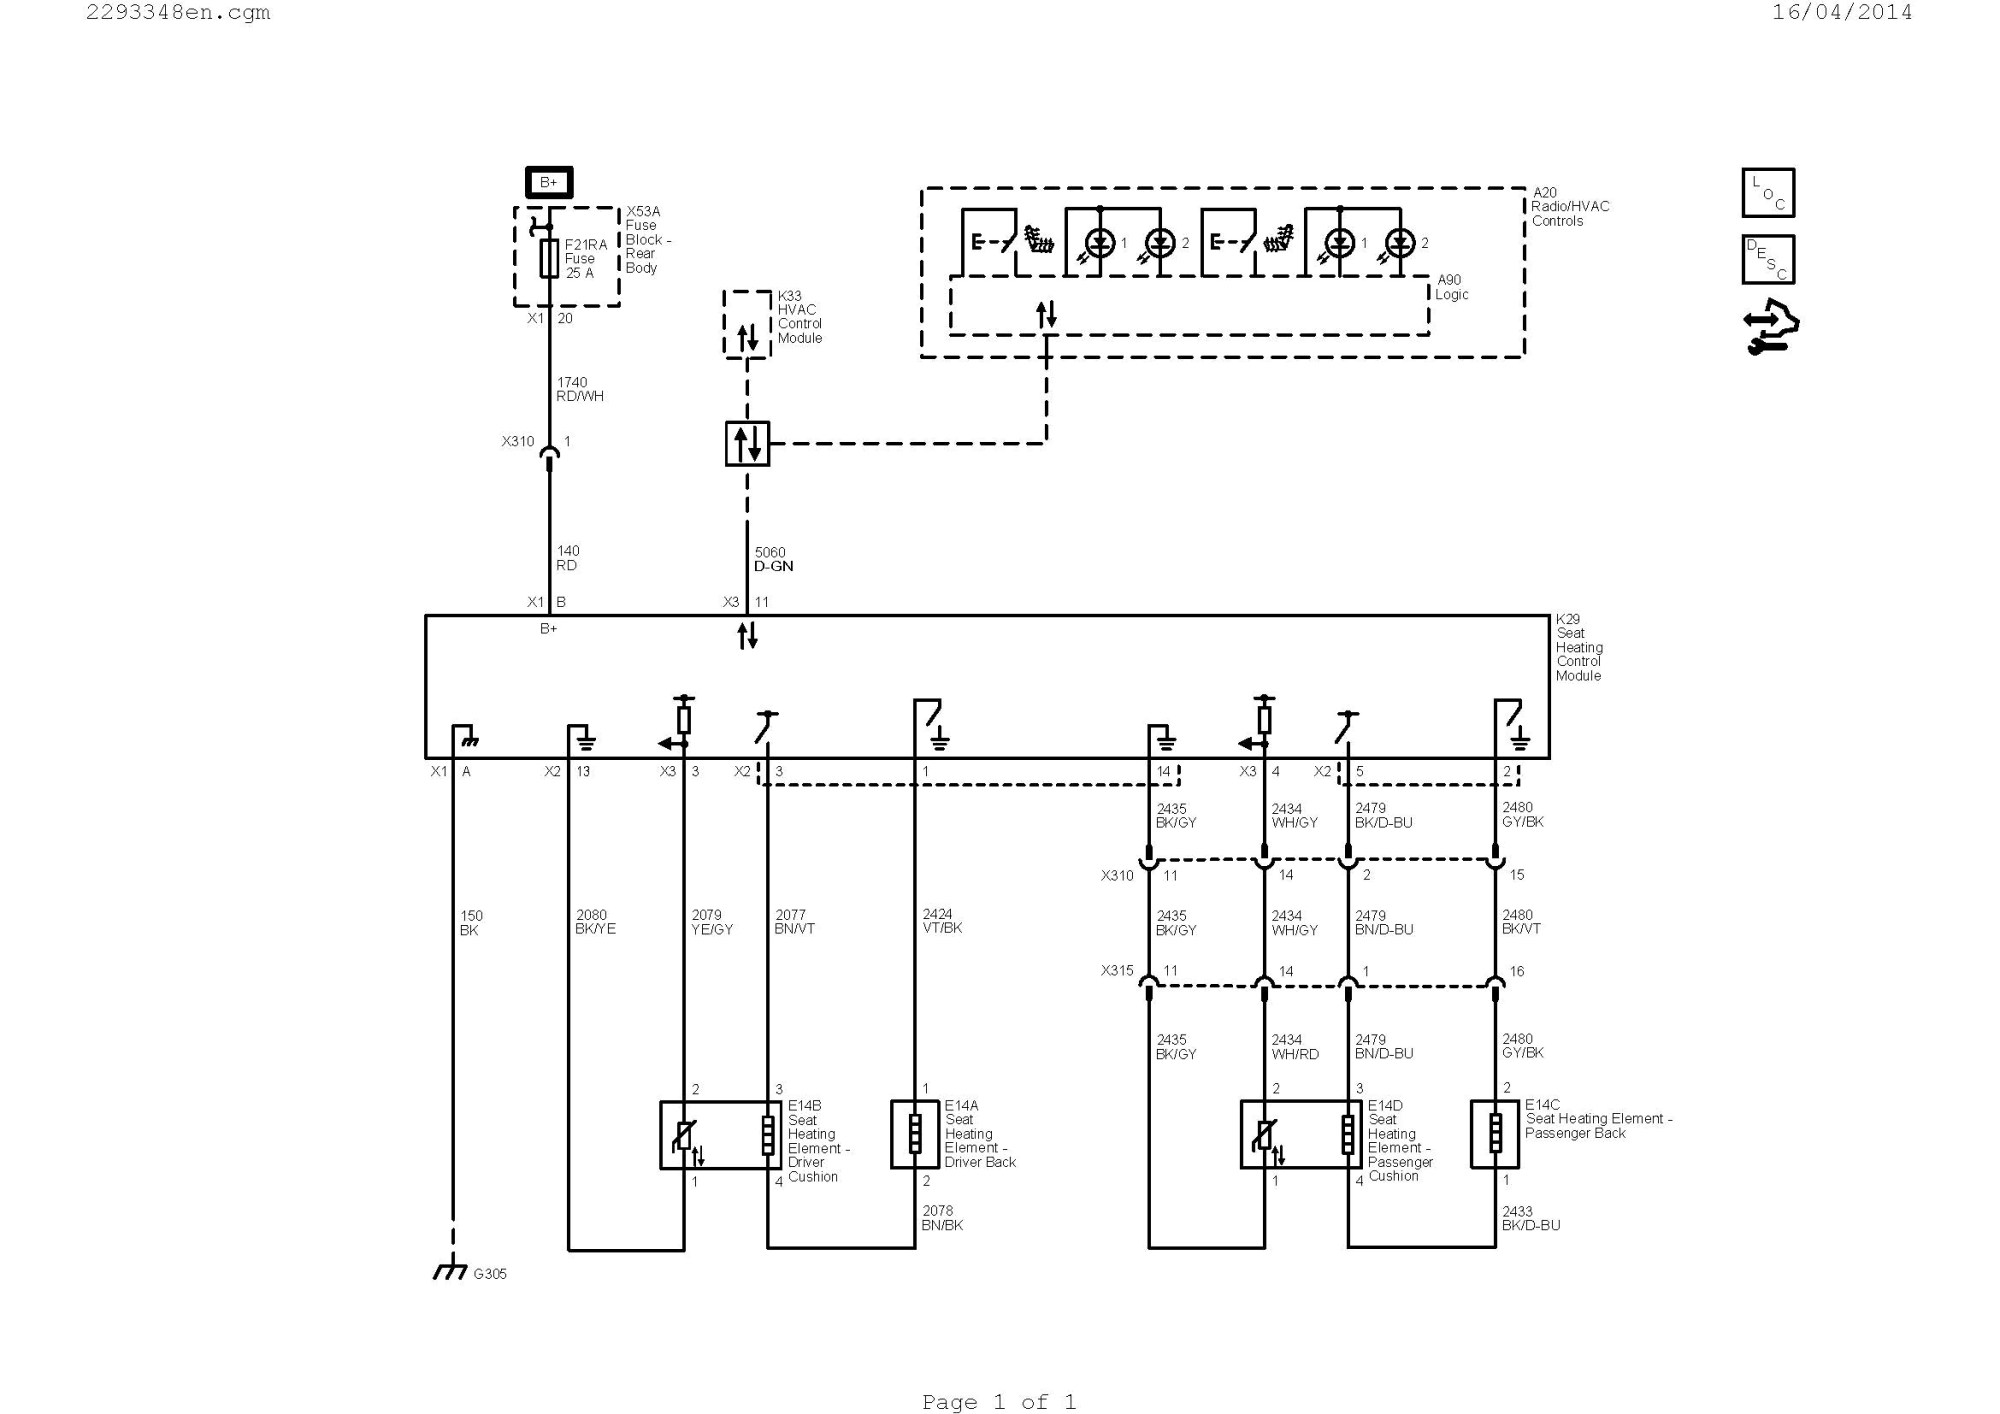 hight resolution of 2007 toyota tundra wiring diagram hvac wiring diagram sources of 2007 toyota tundra wiring diagram wiring